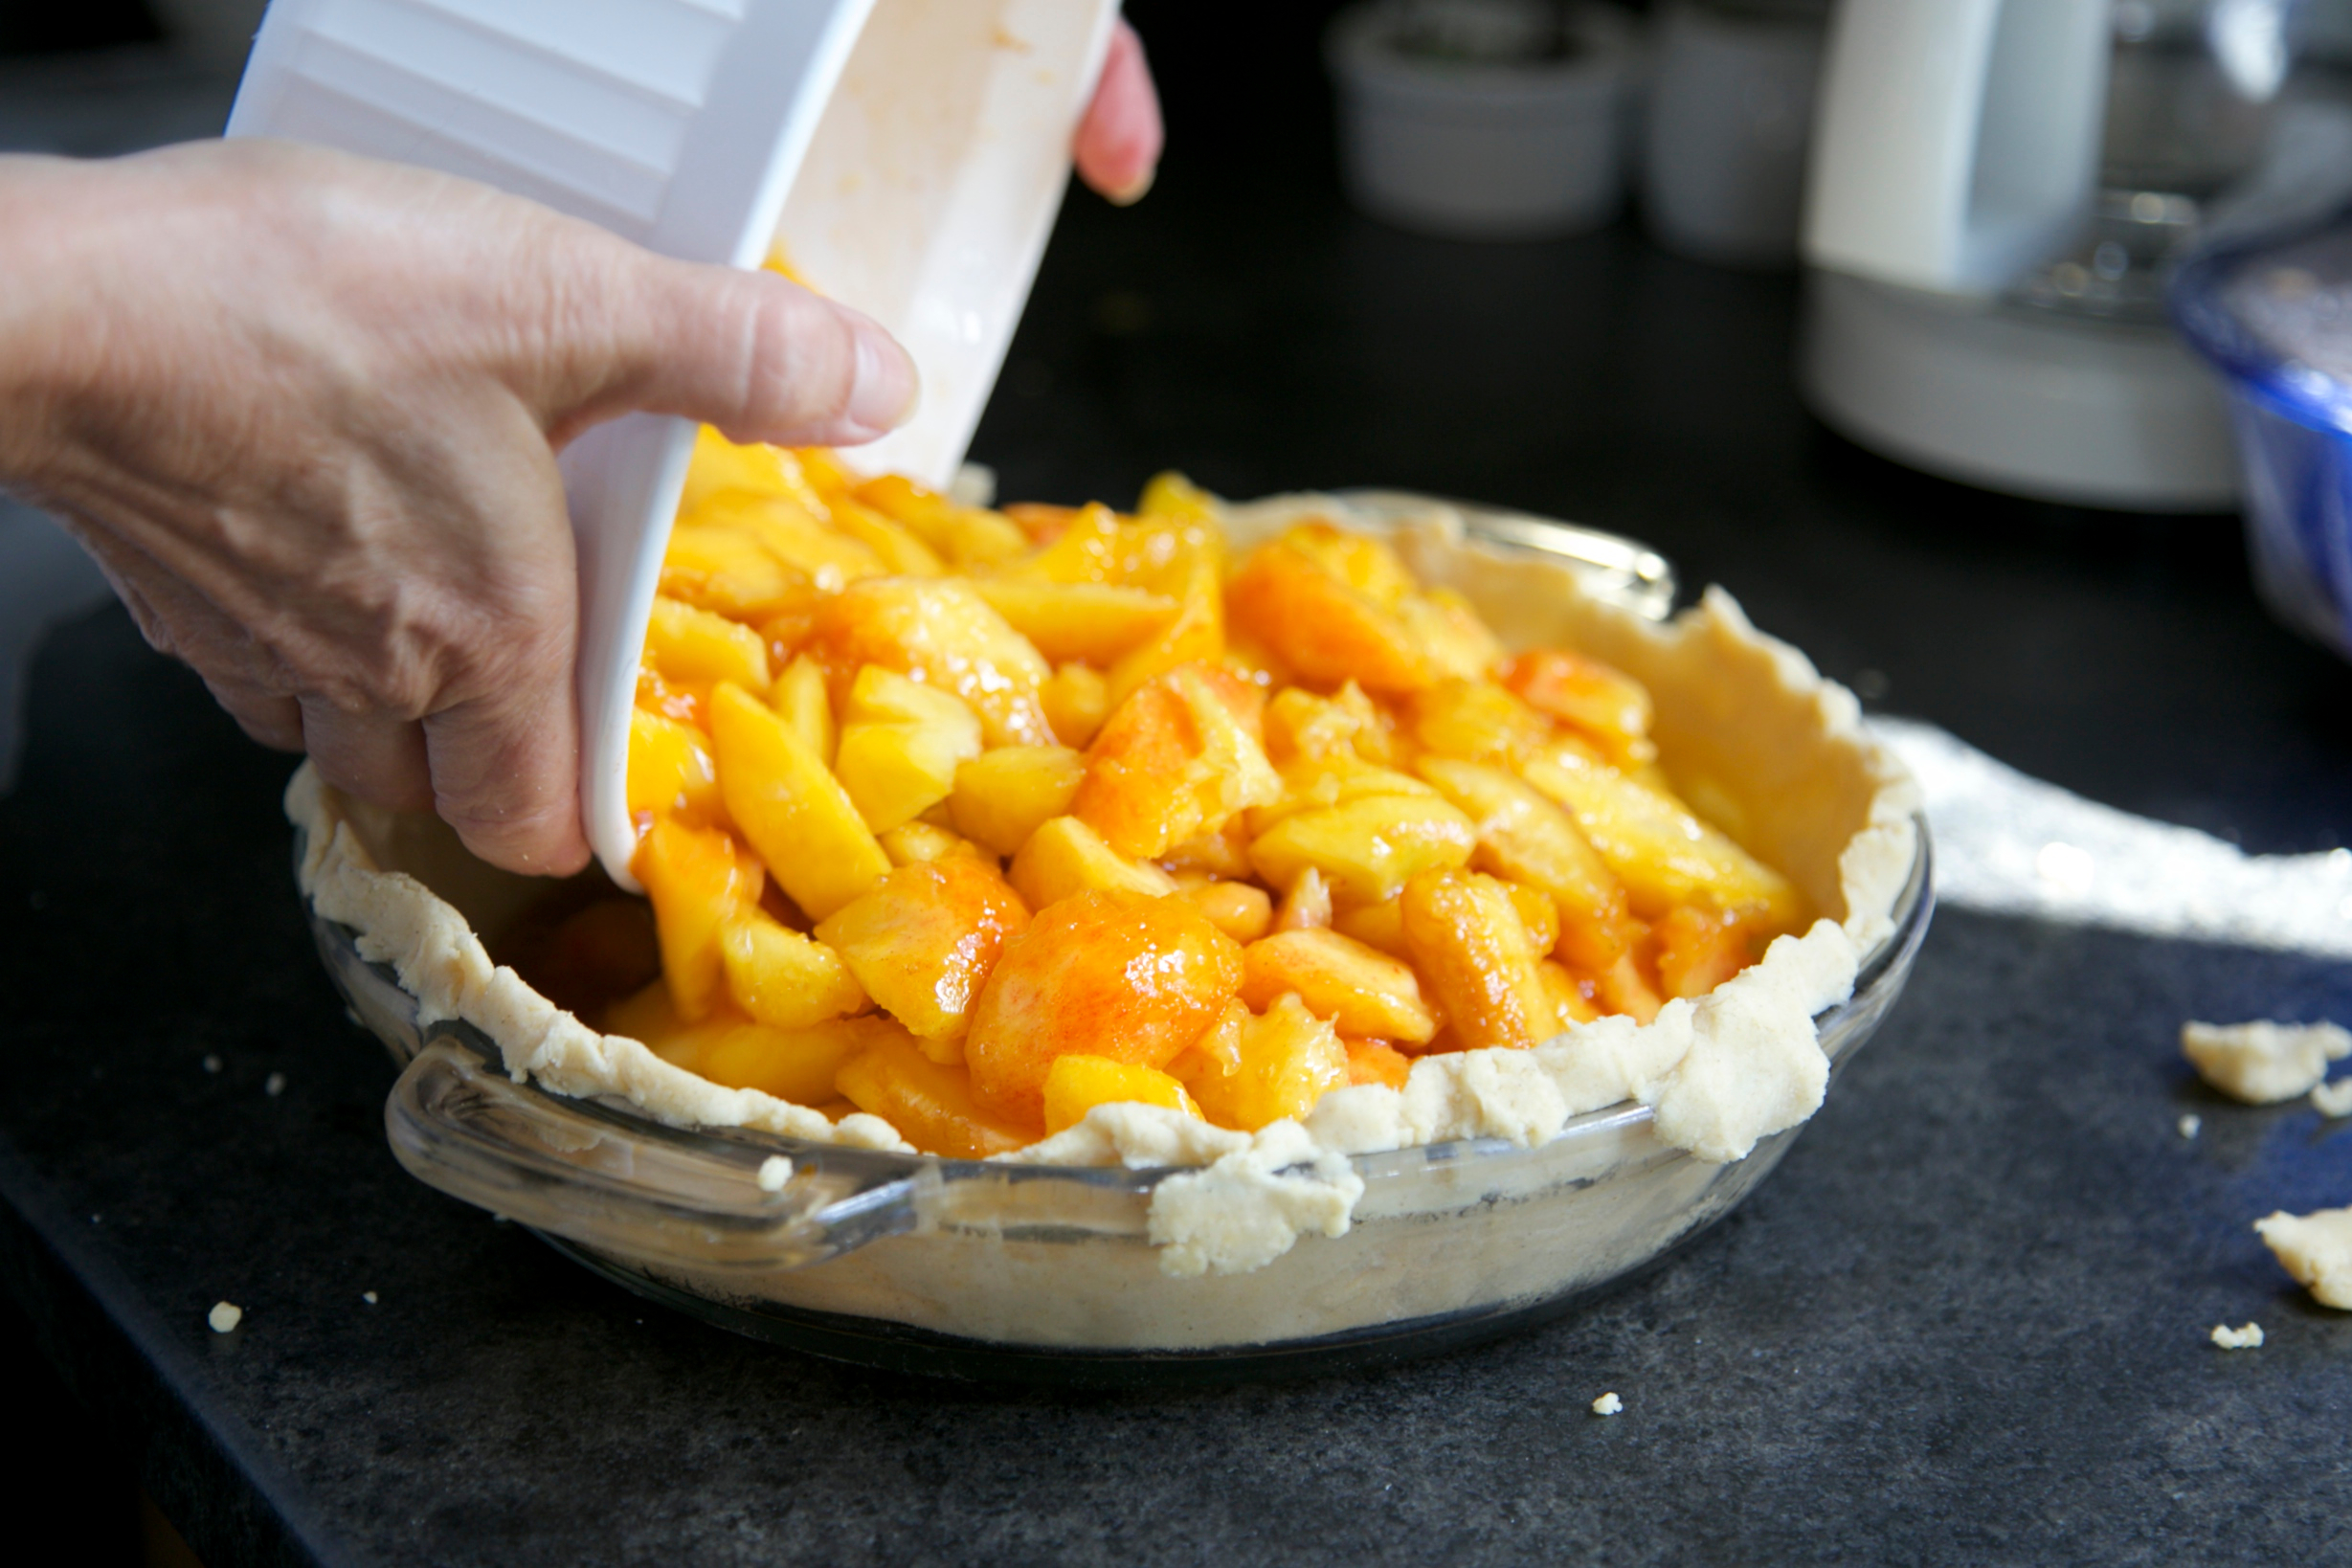 Canva - Person Pouring Cooked Food from Ramekin to Pie Tray on Gray Surface.jpg